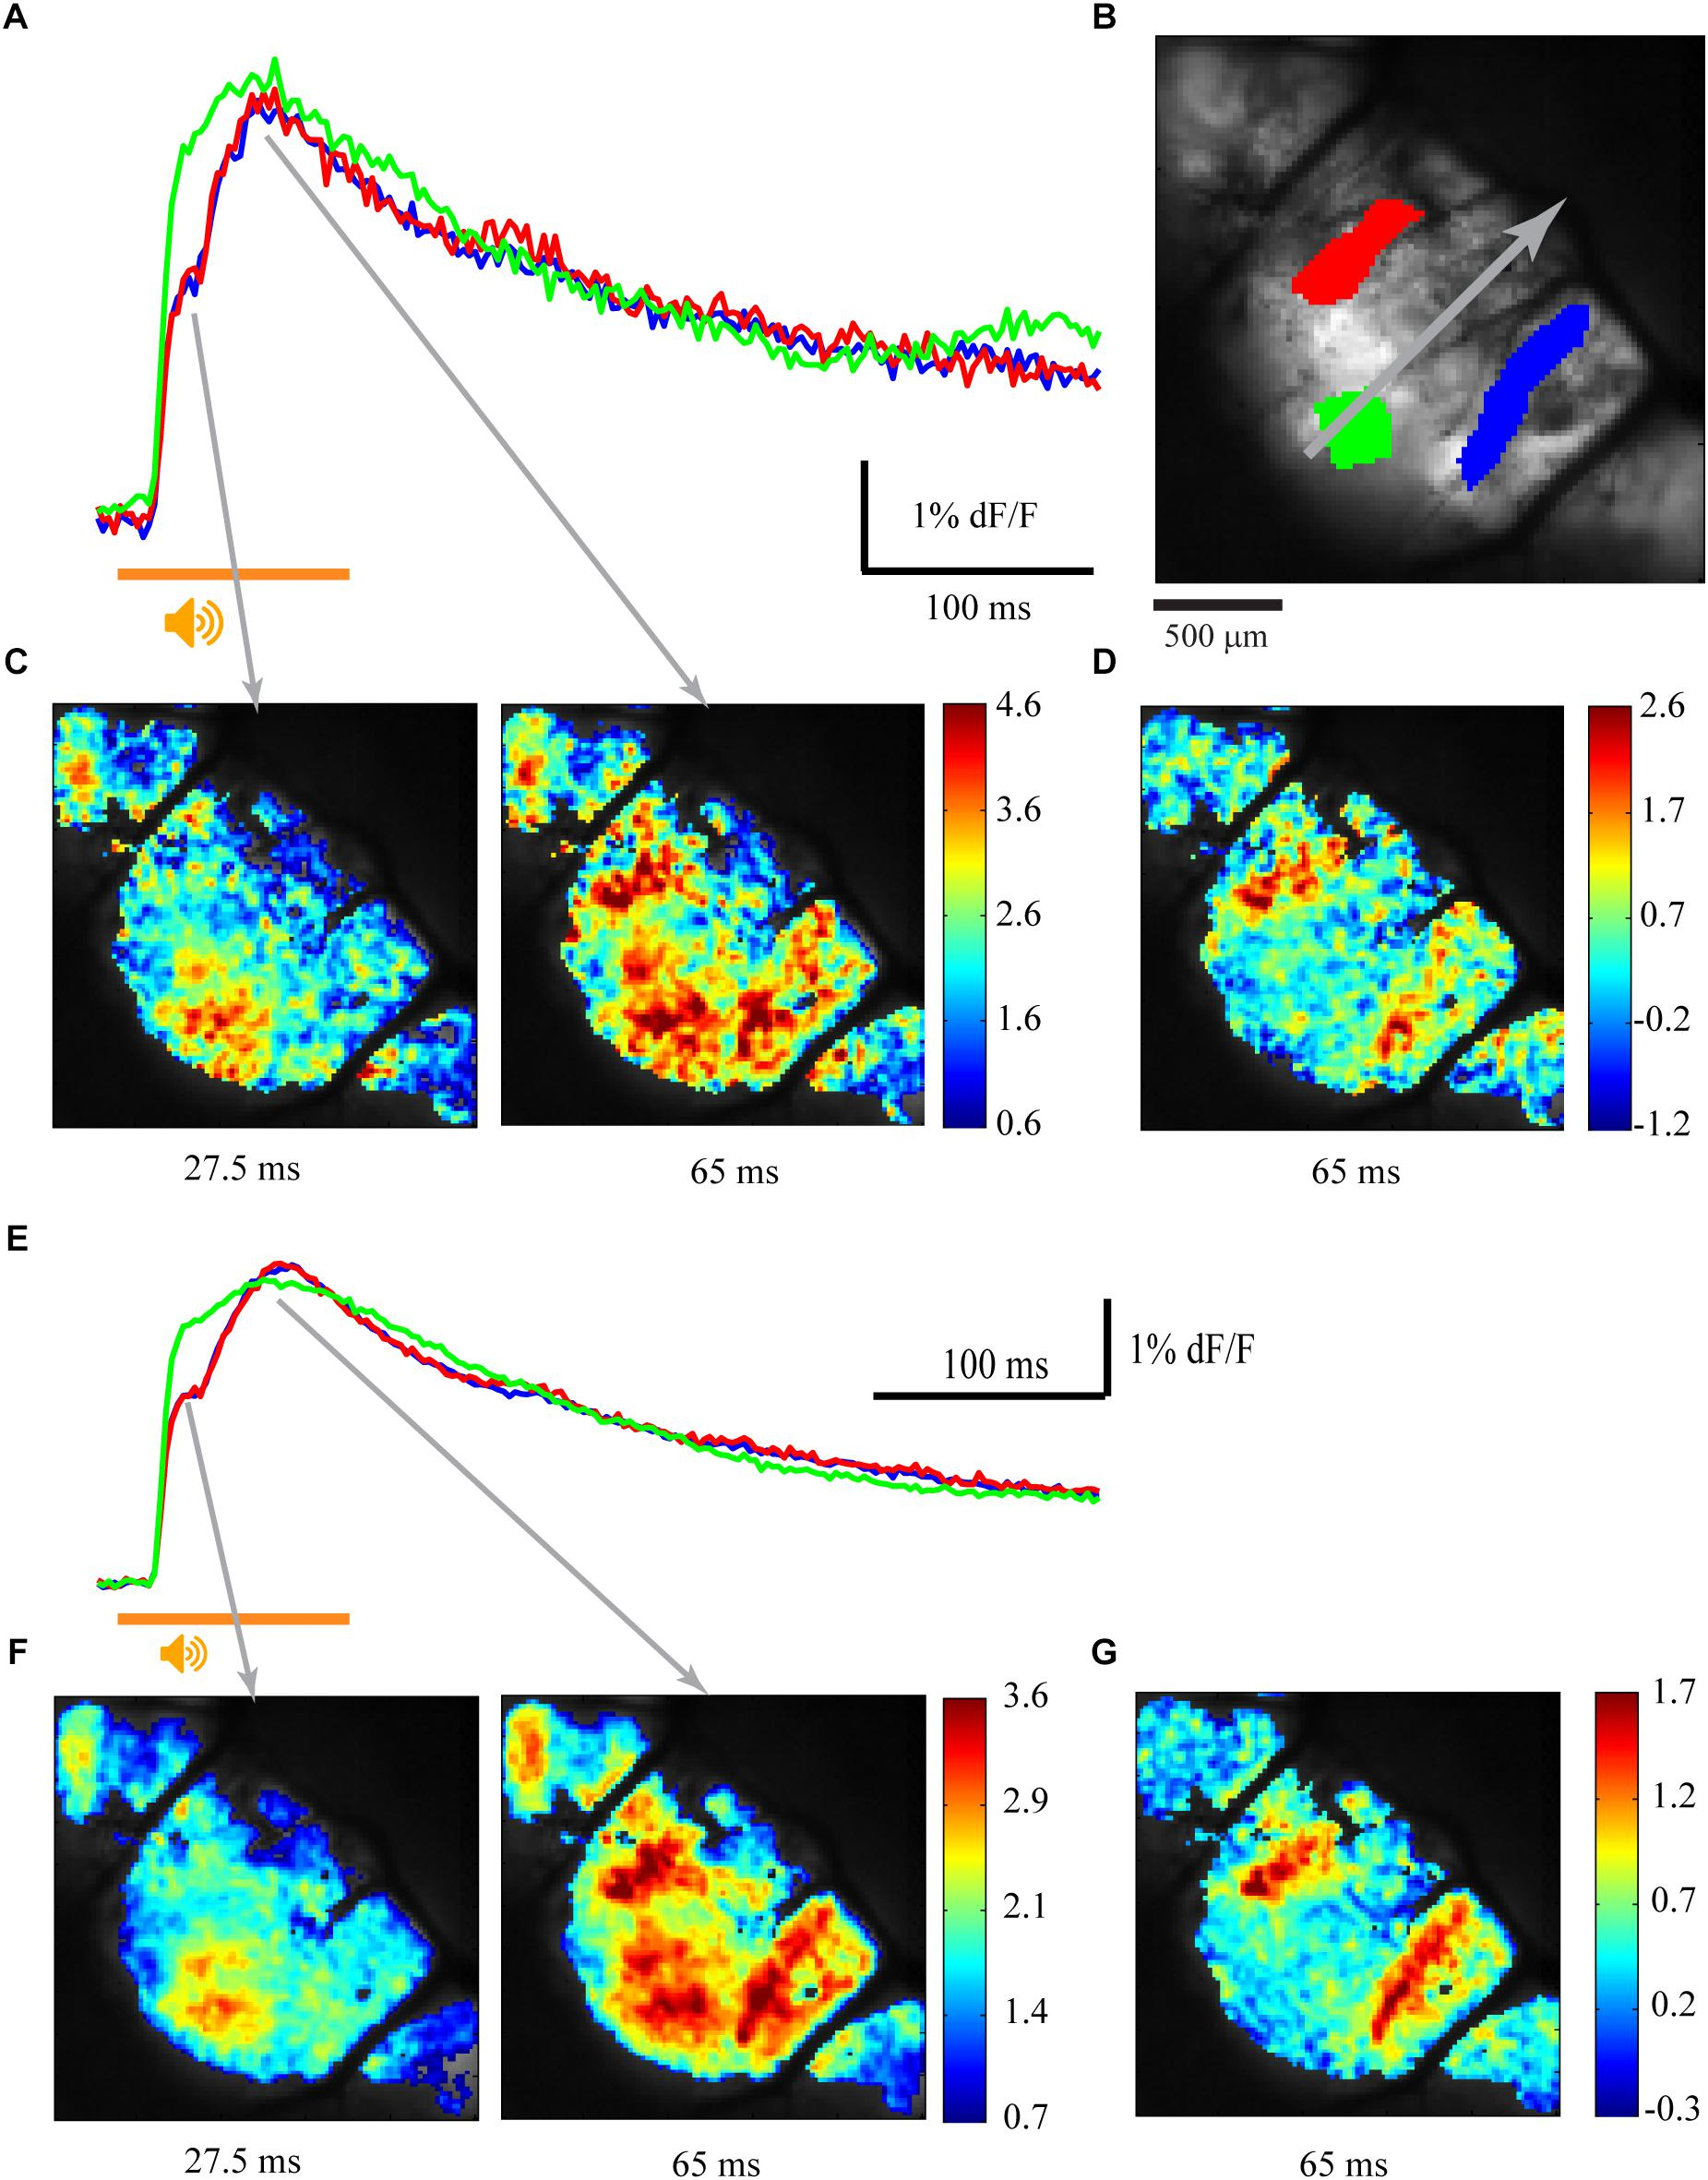 Frontiers | Large Scale Calcium Imaging of the Cerebellar